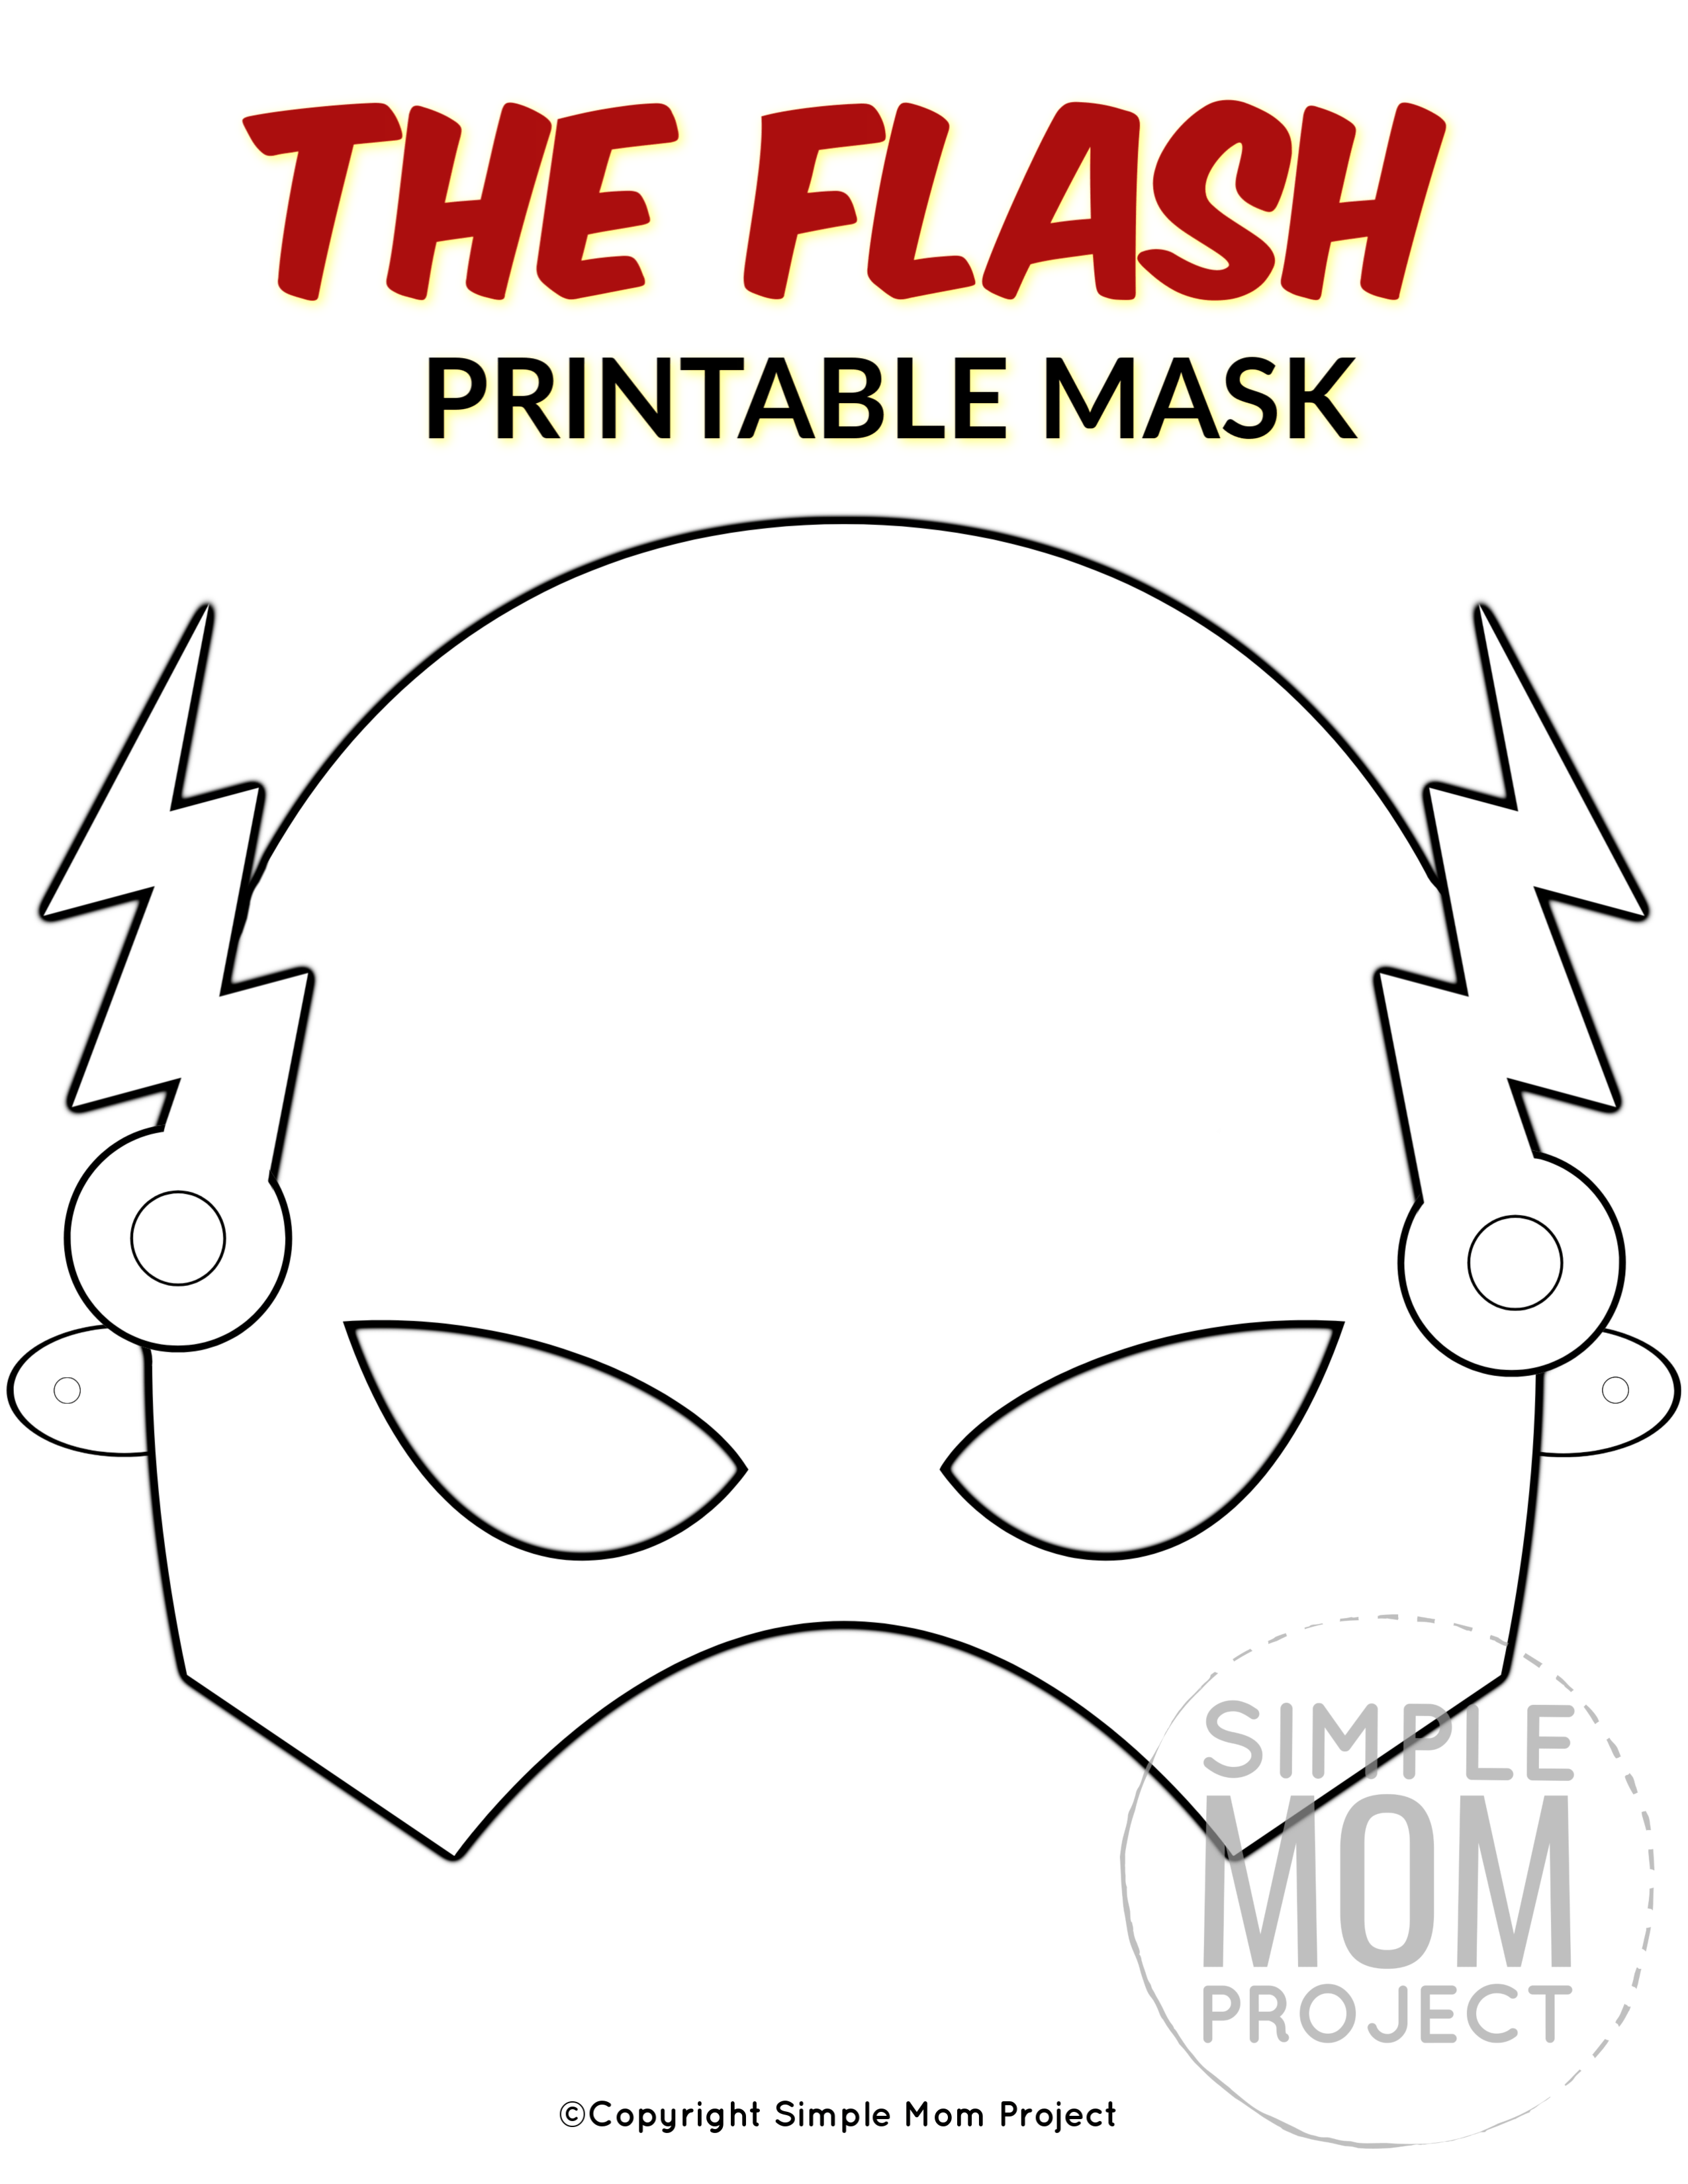 The Flash Free Printable Mask Template Face Masks For Kids Mask For Kids Mask Template Printable